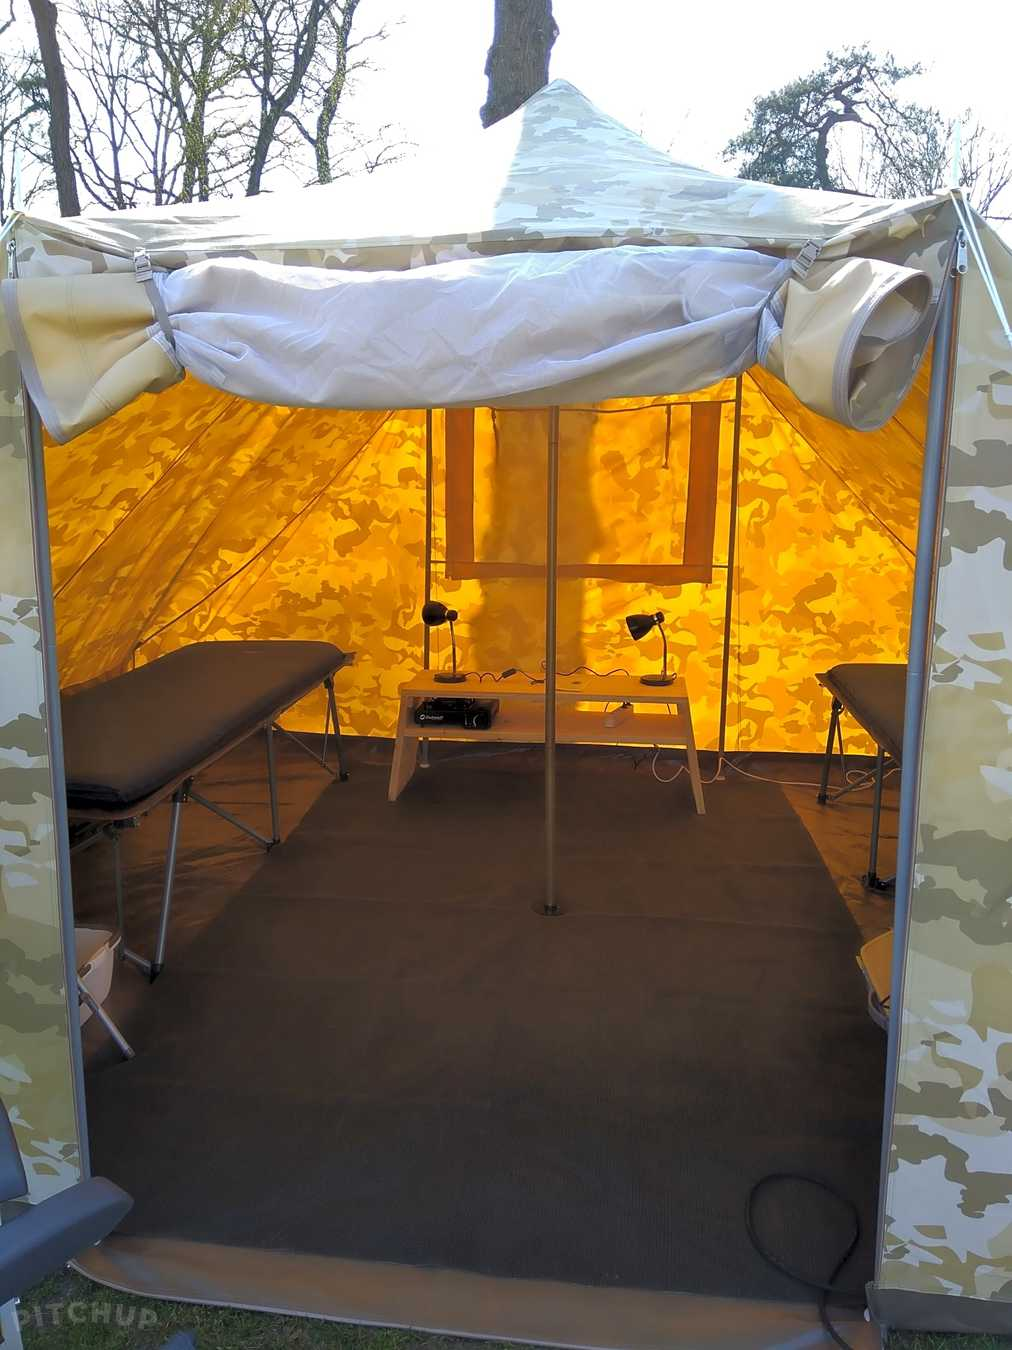 Tent OK at Camping Den Blanken, Neede Pitchup®